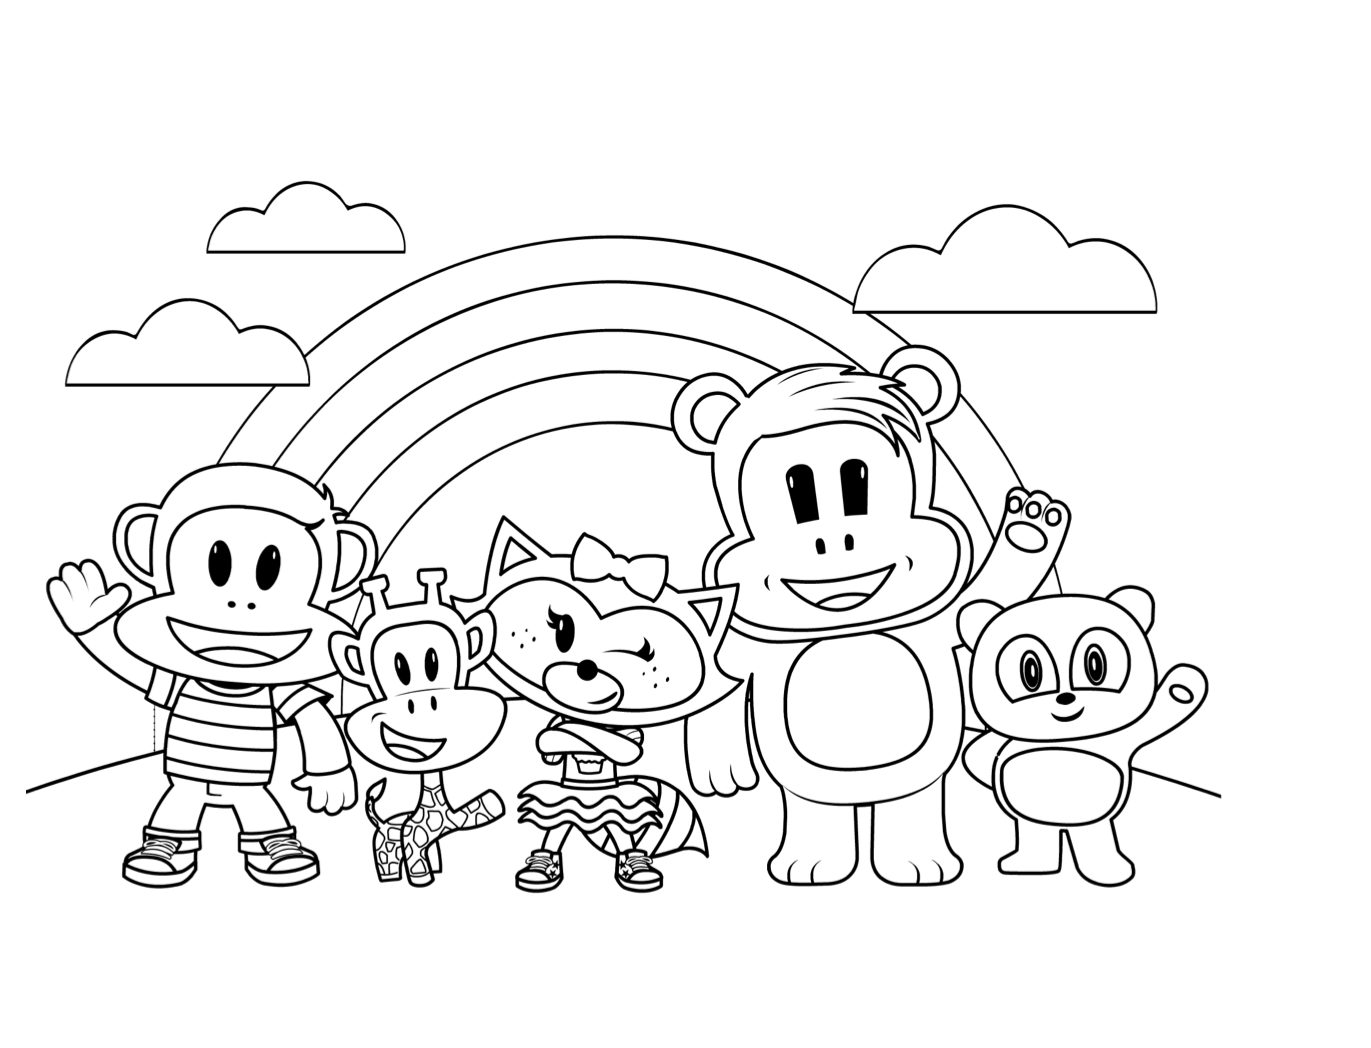 Julius Jr. & Friends #coloring Sheet Ready For Your